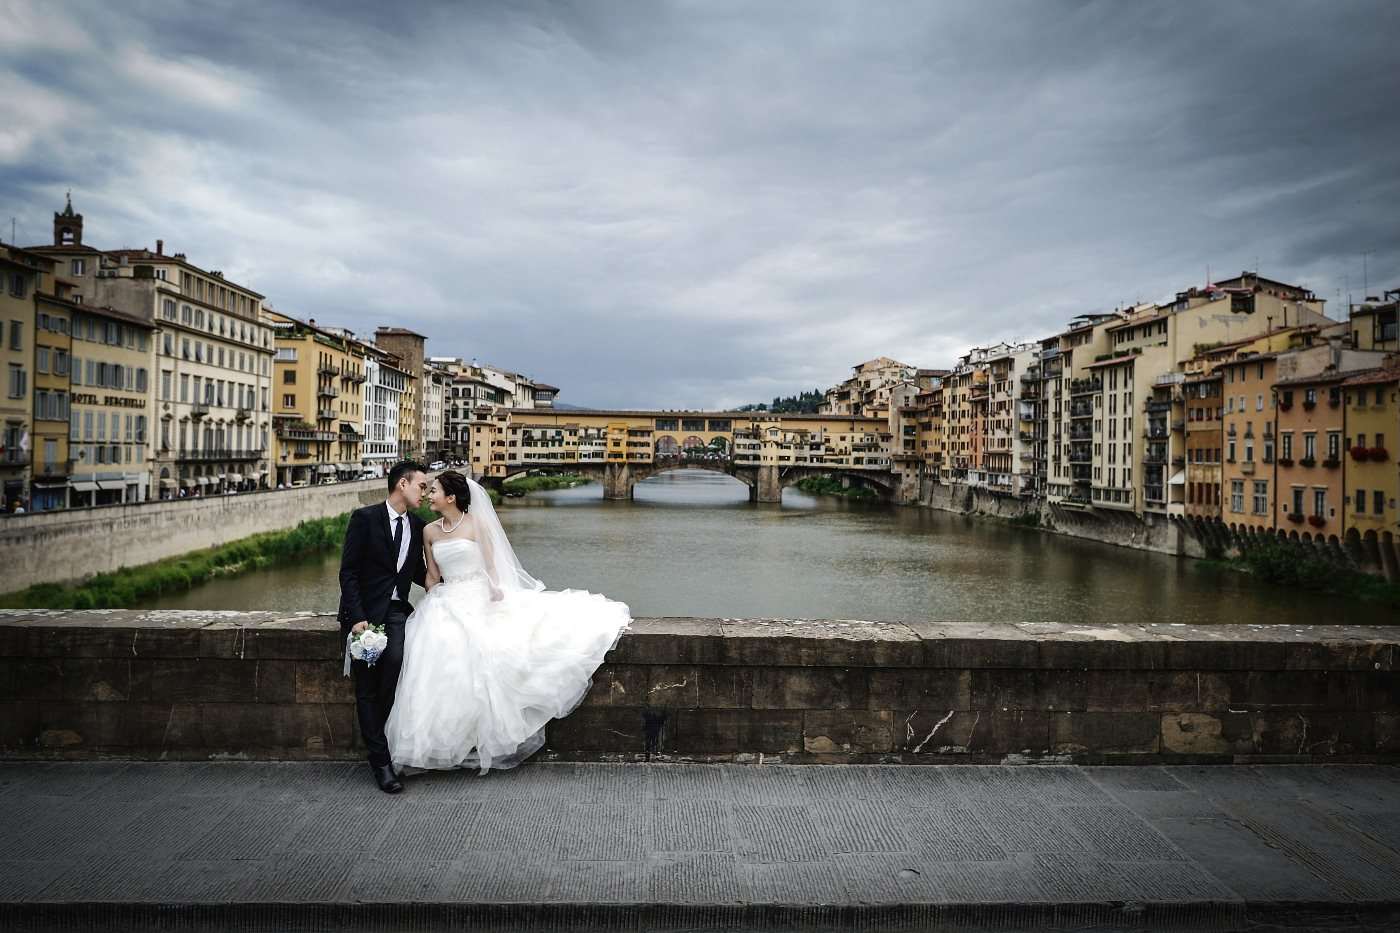 wedding photo tuscany_16.jpg